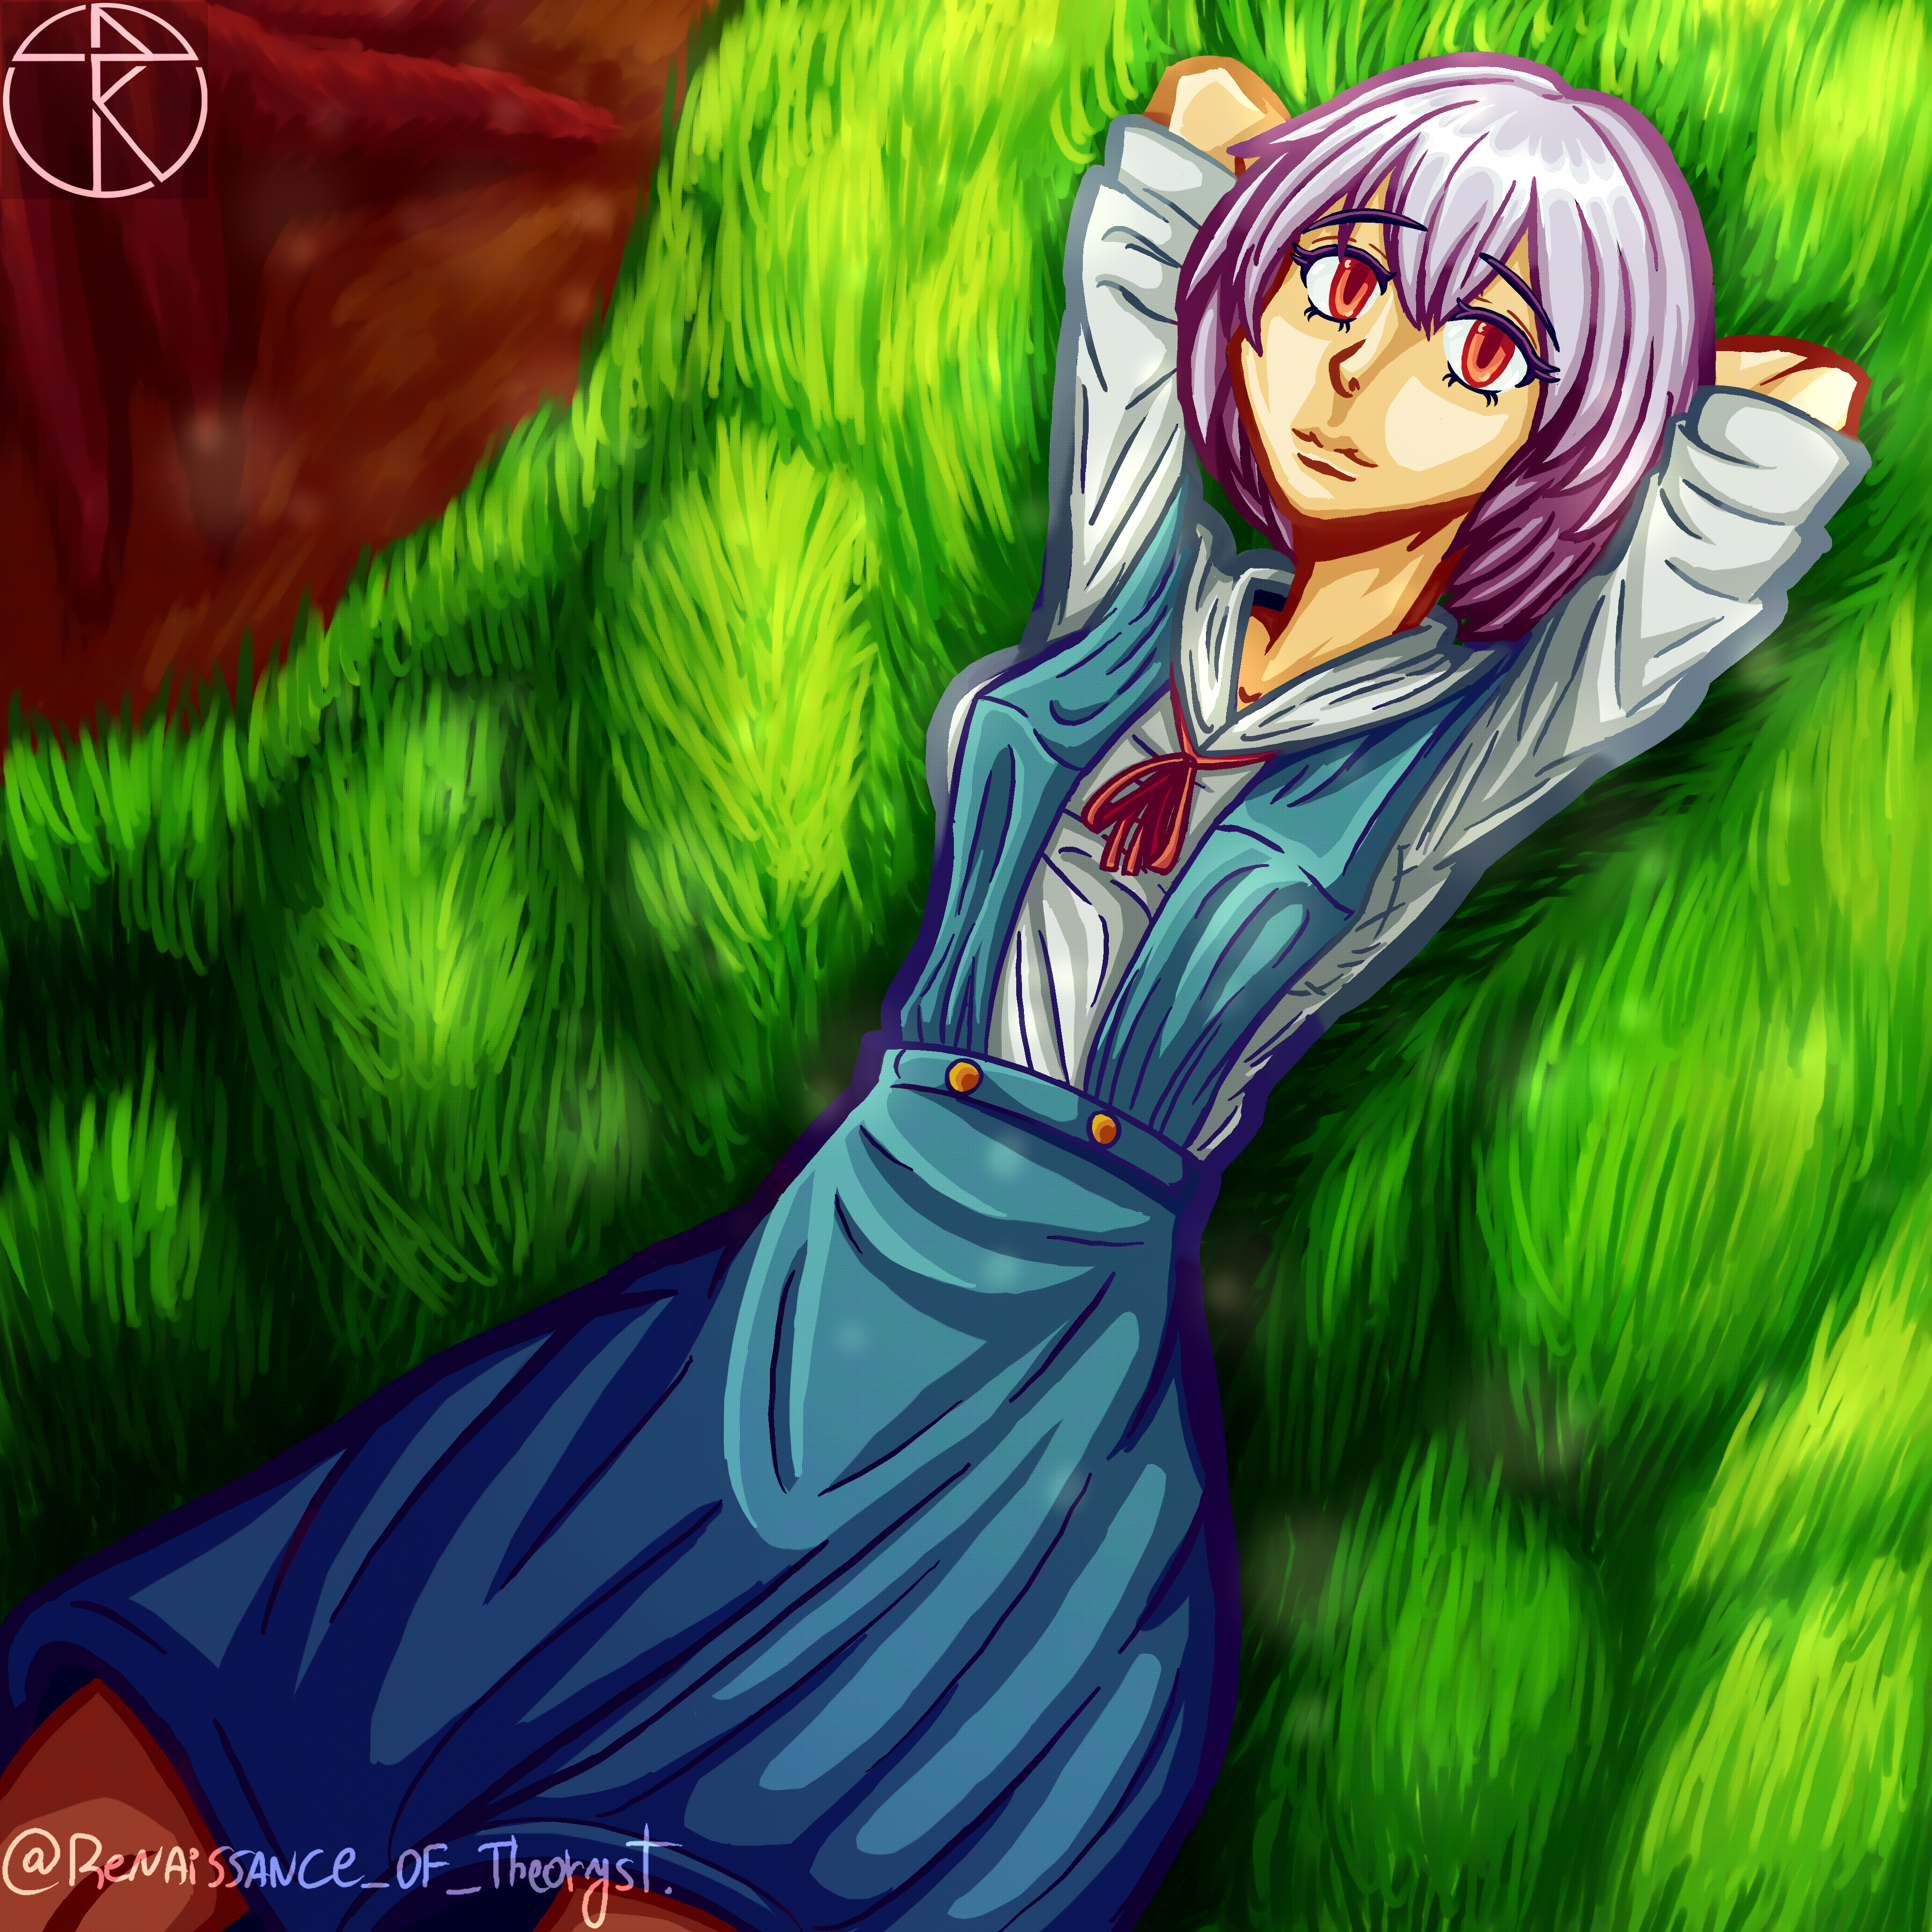 Rei Ayanami Resting in the grass